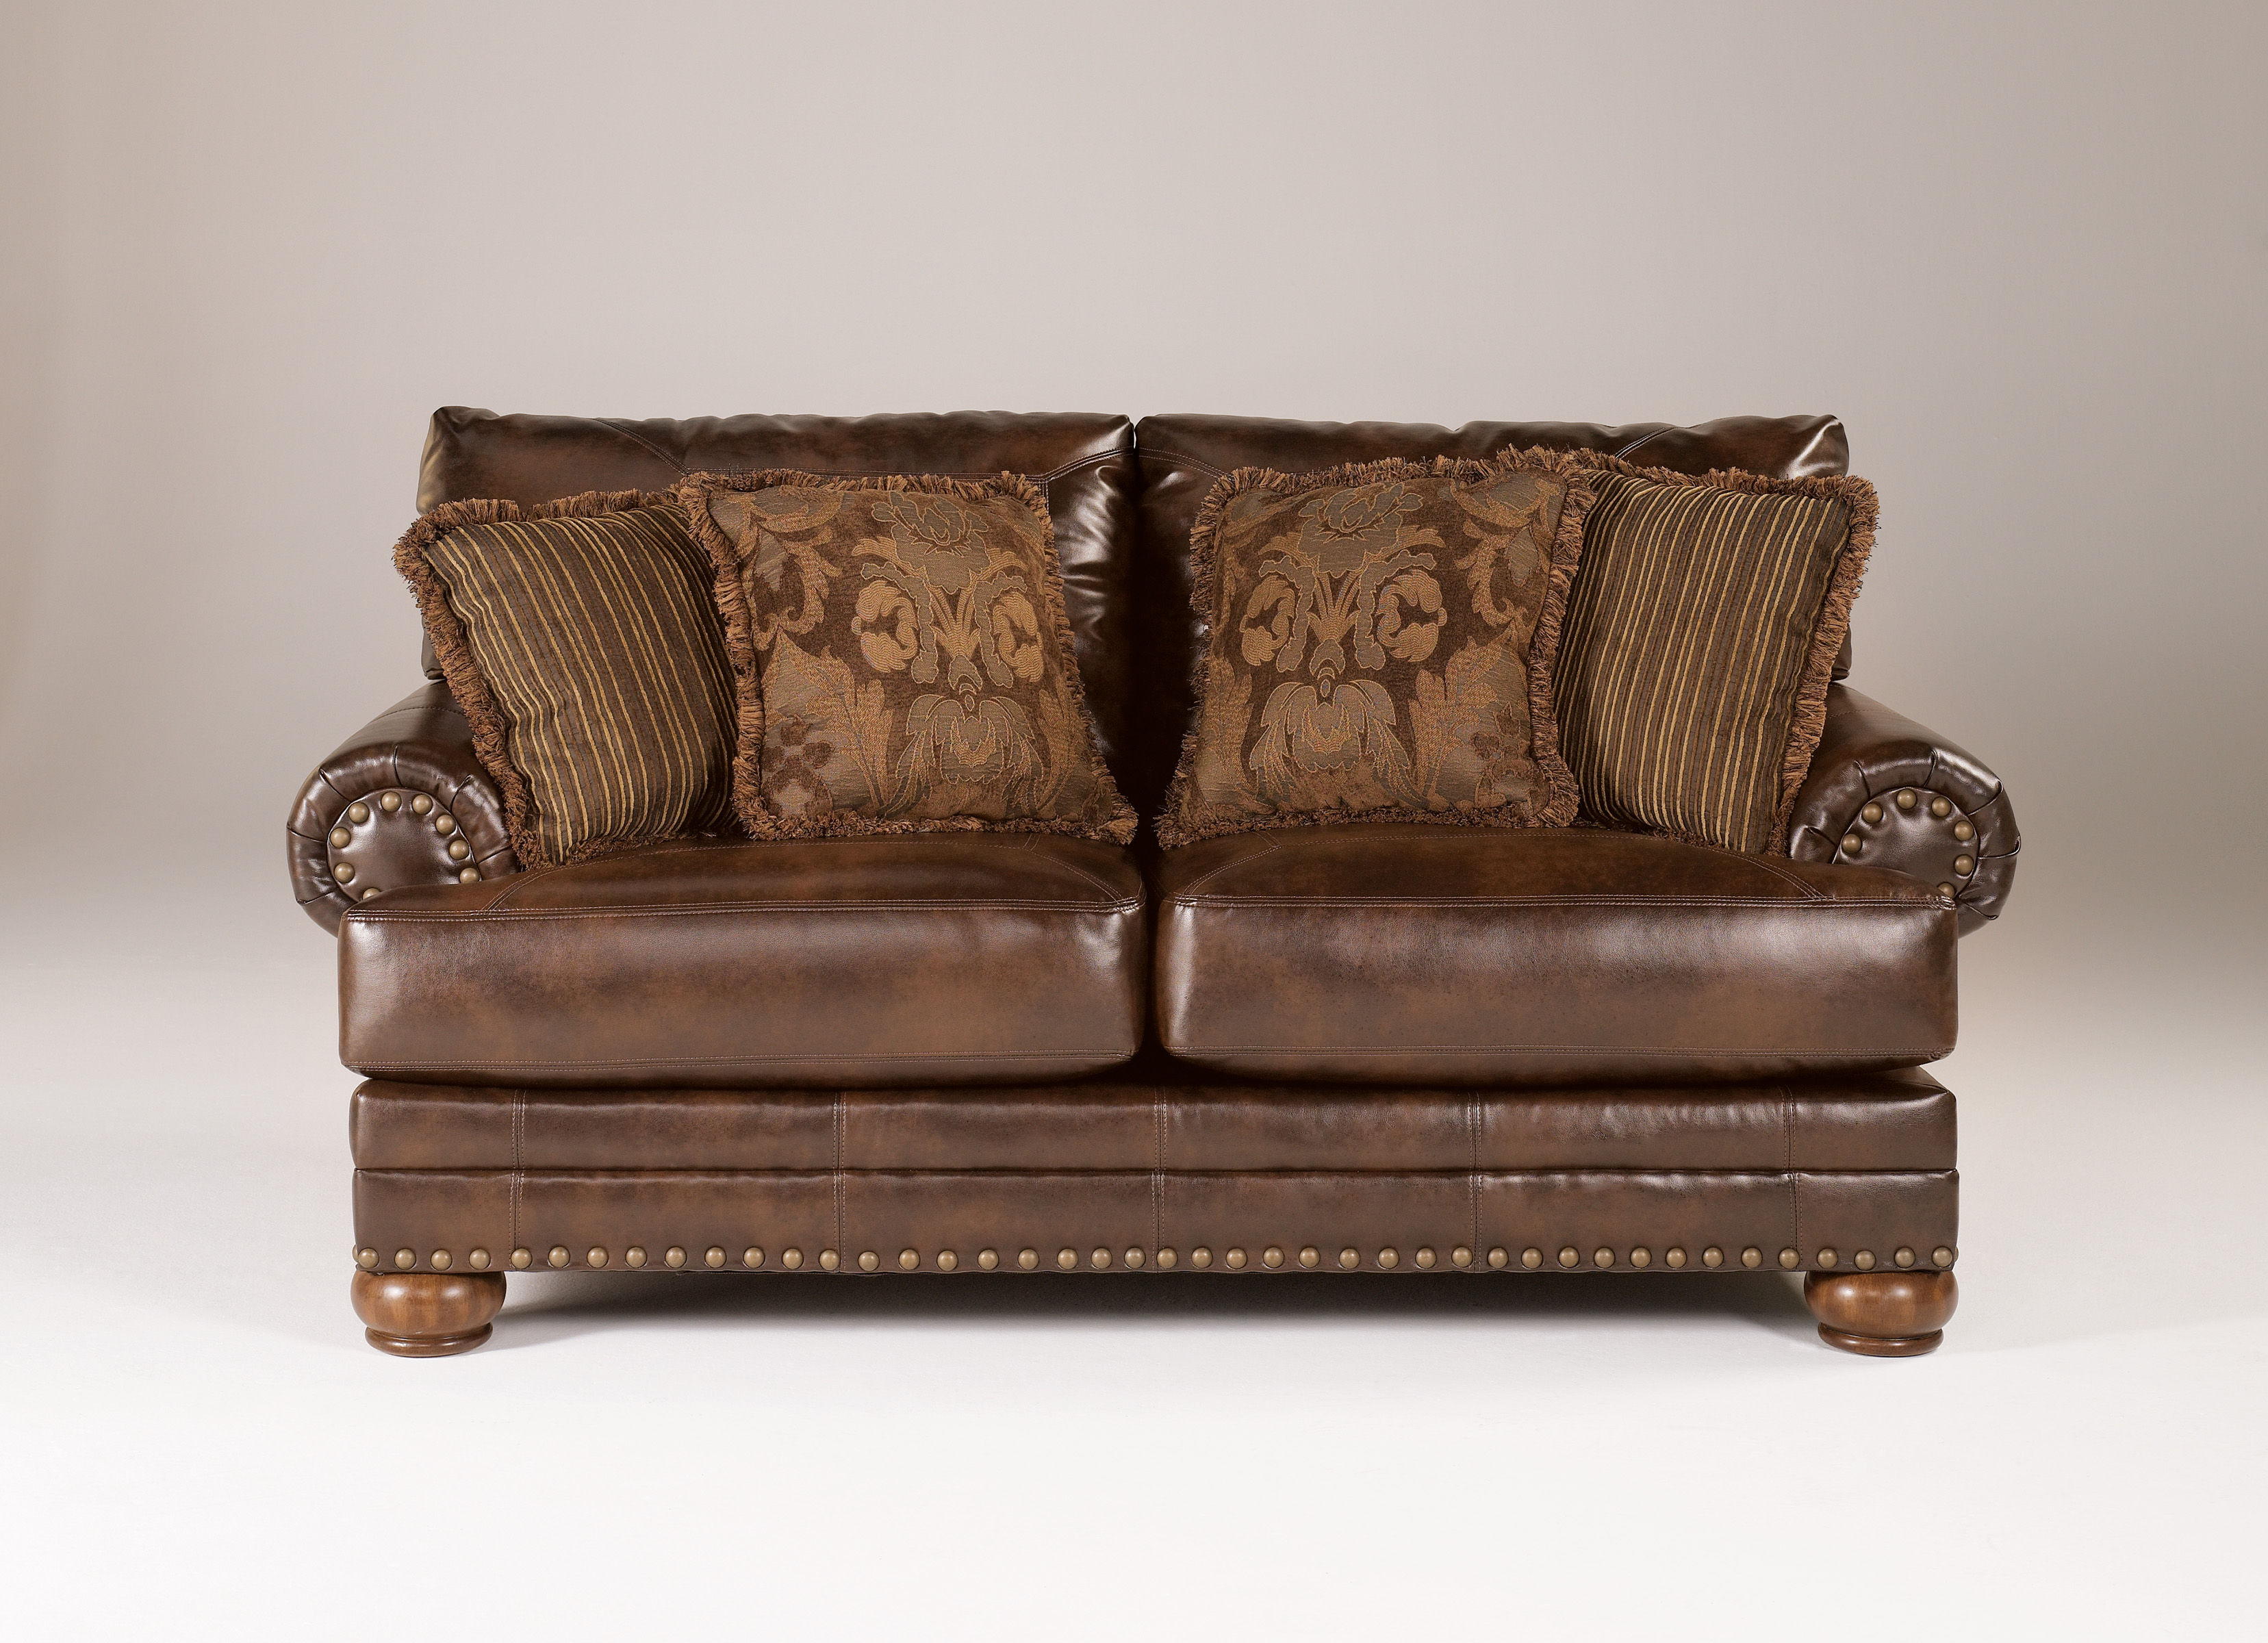 Ashley Furniture Durablend Antique Loveseat The Classy Home